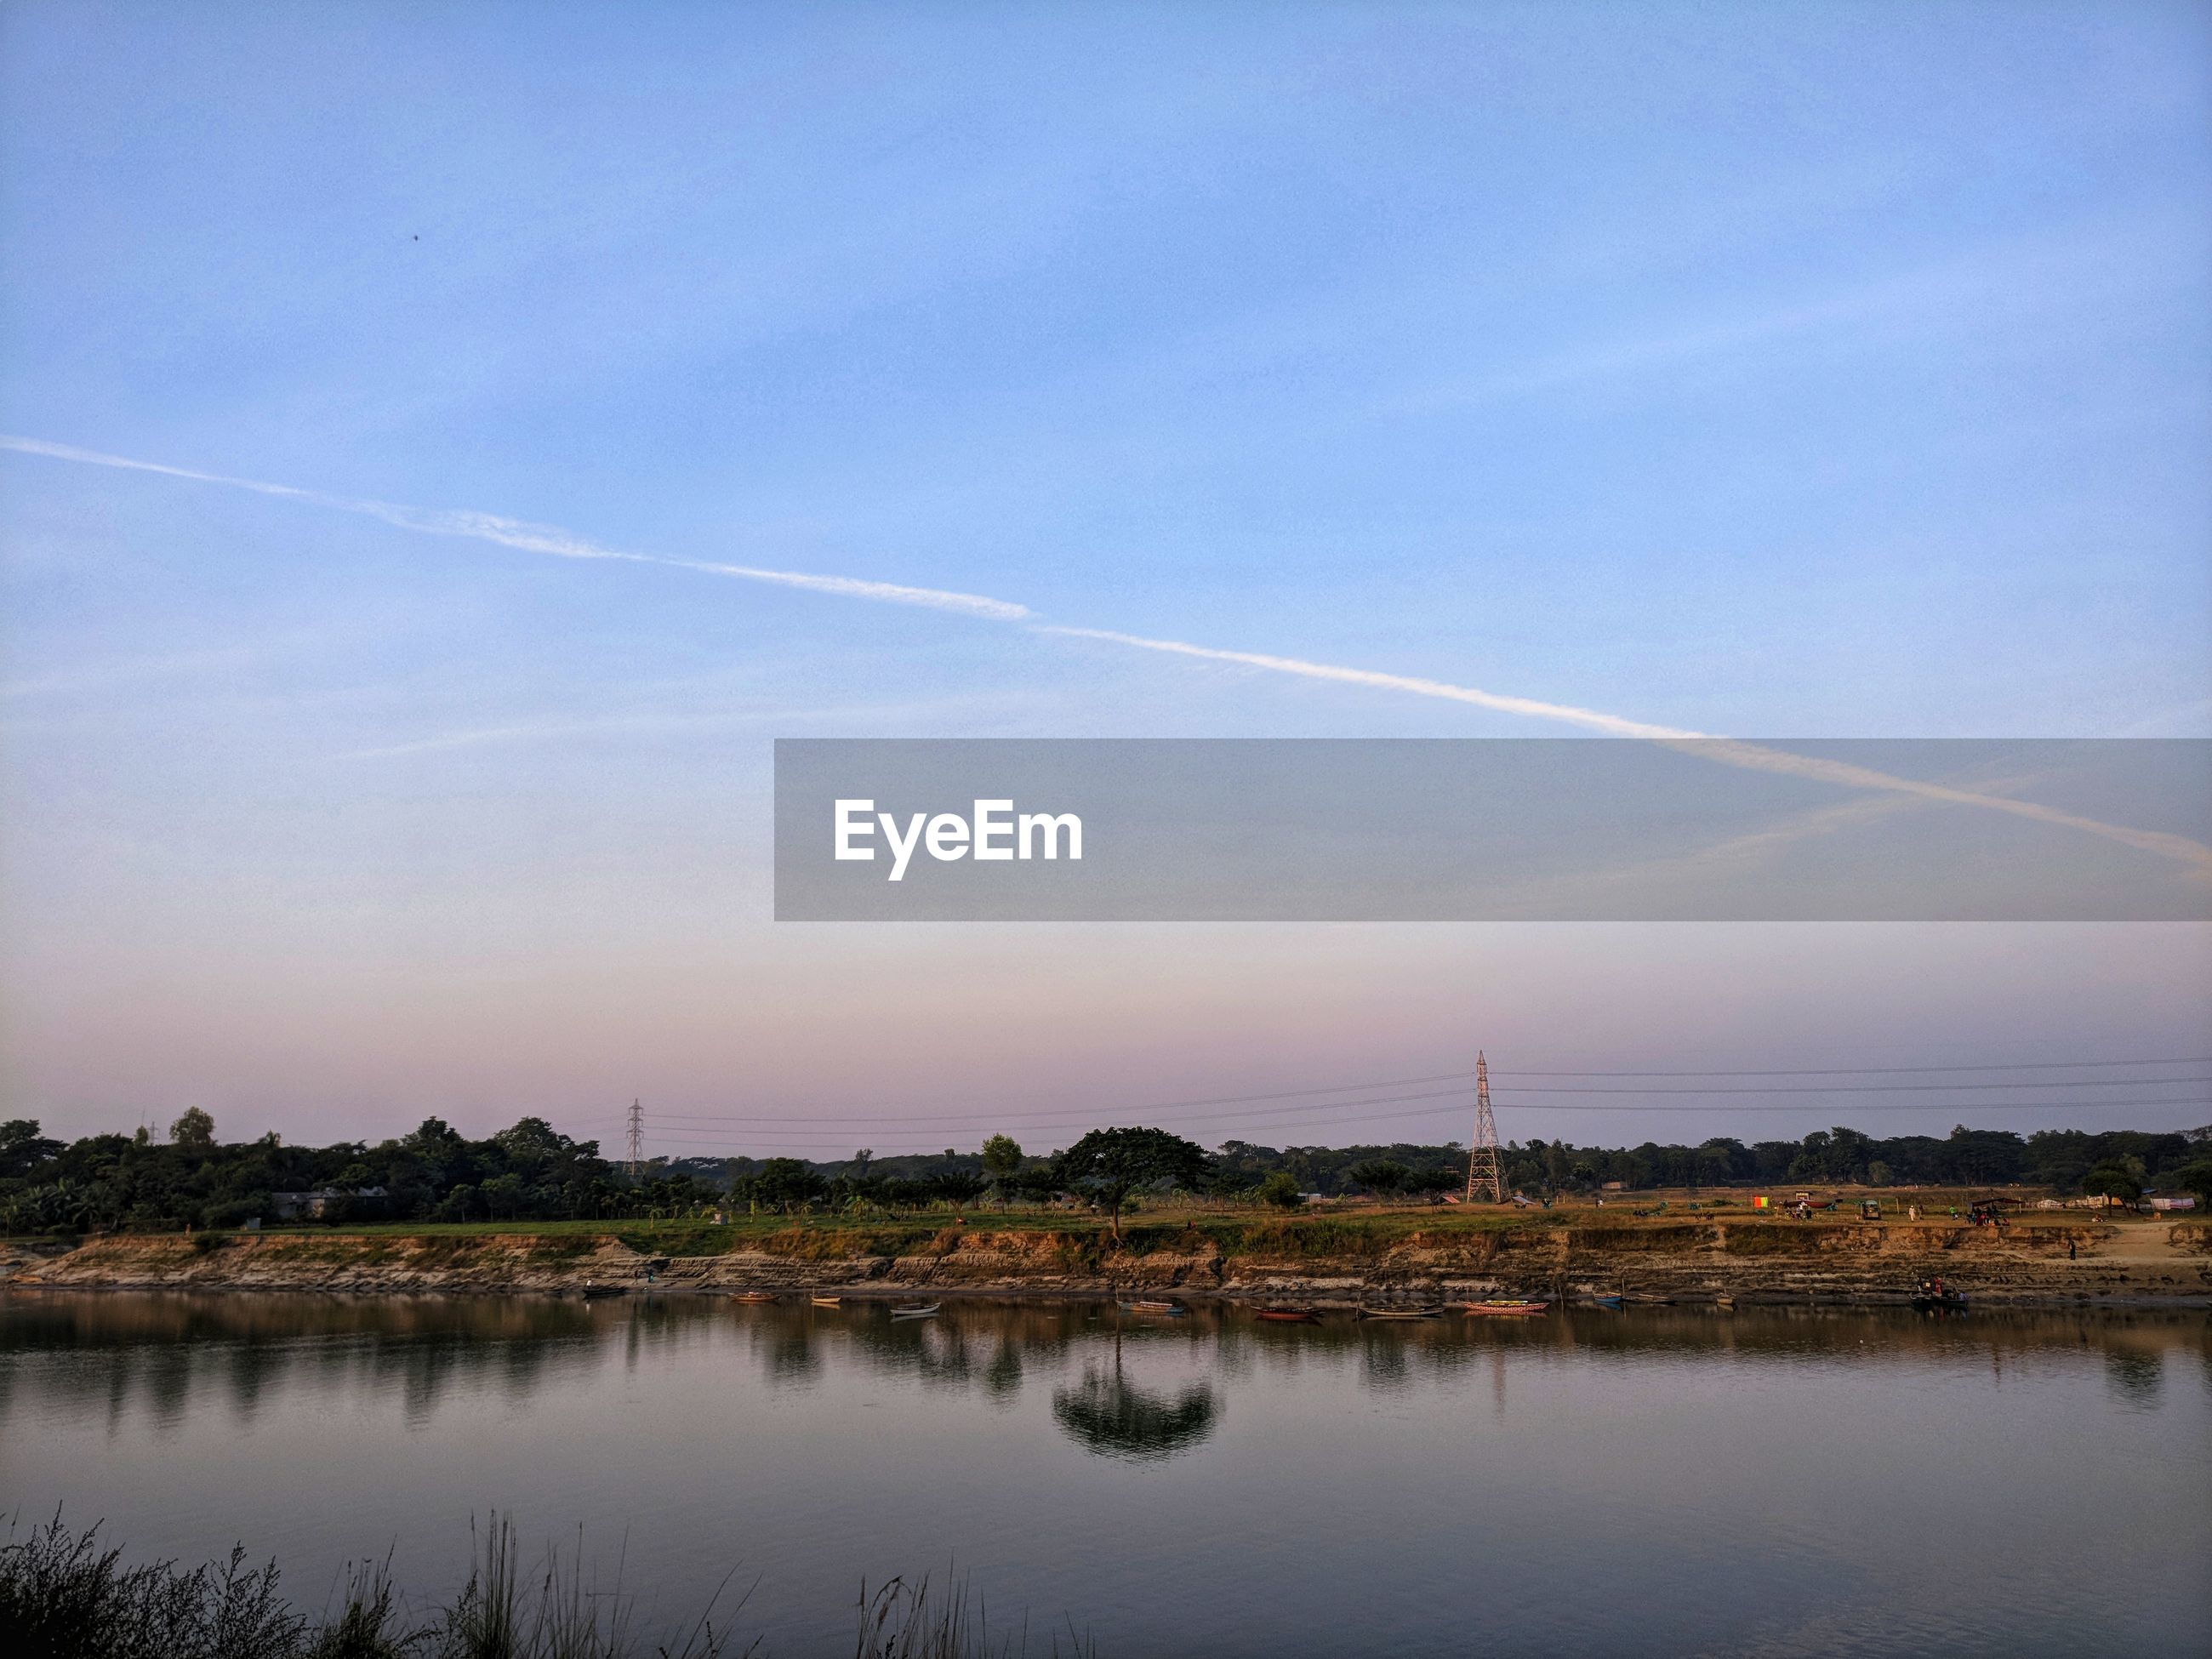 SCENIC VIEW OF LAKE AGAINST VAPOR TRAILS IN SKY